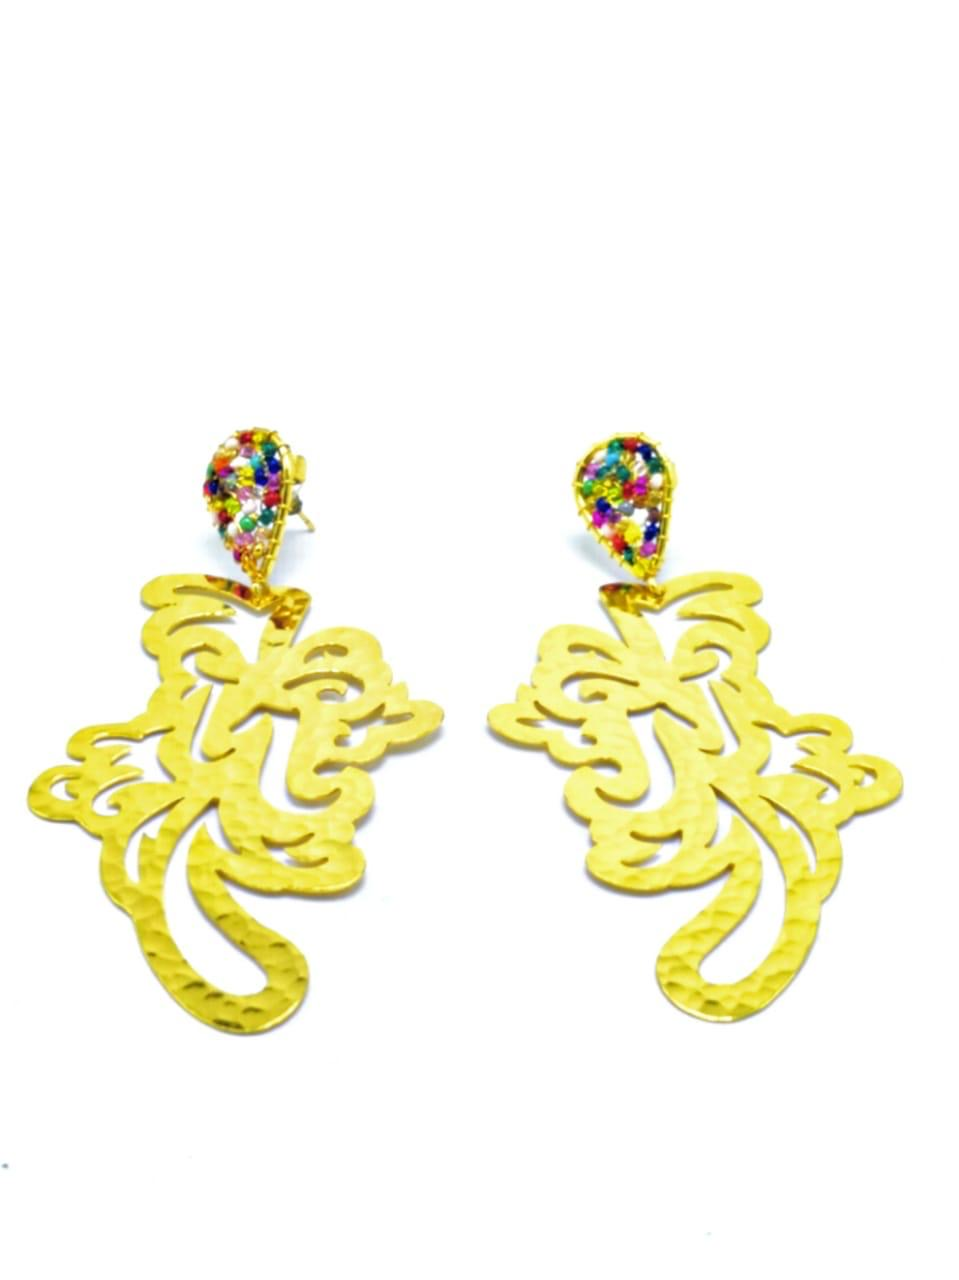 Aretes grandes arabesco colores